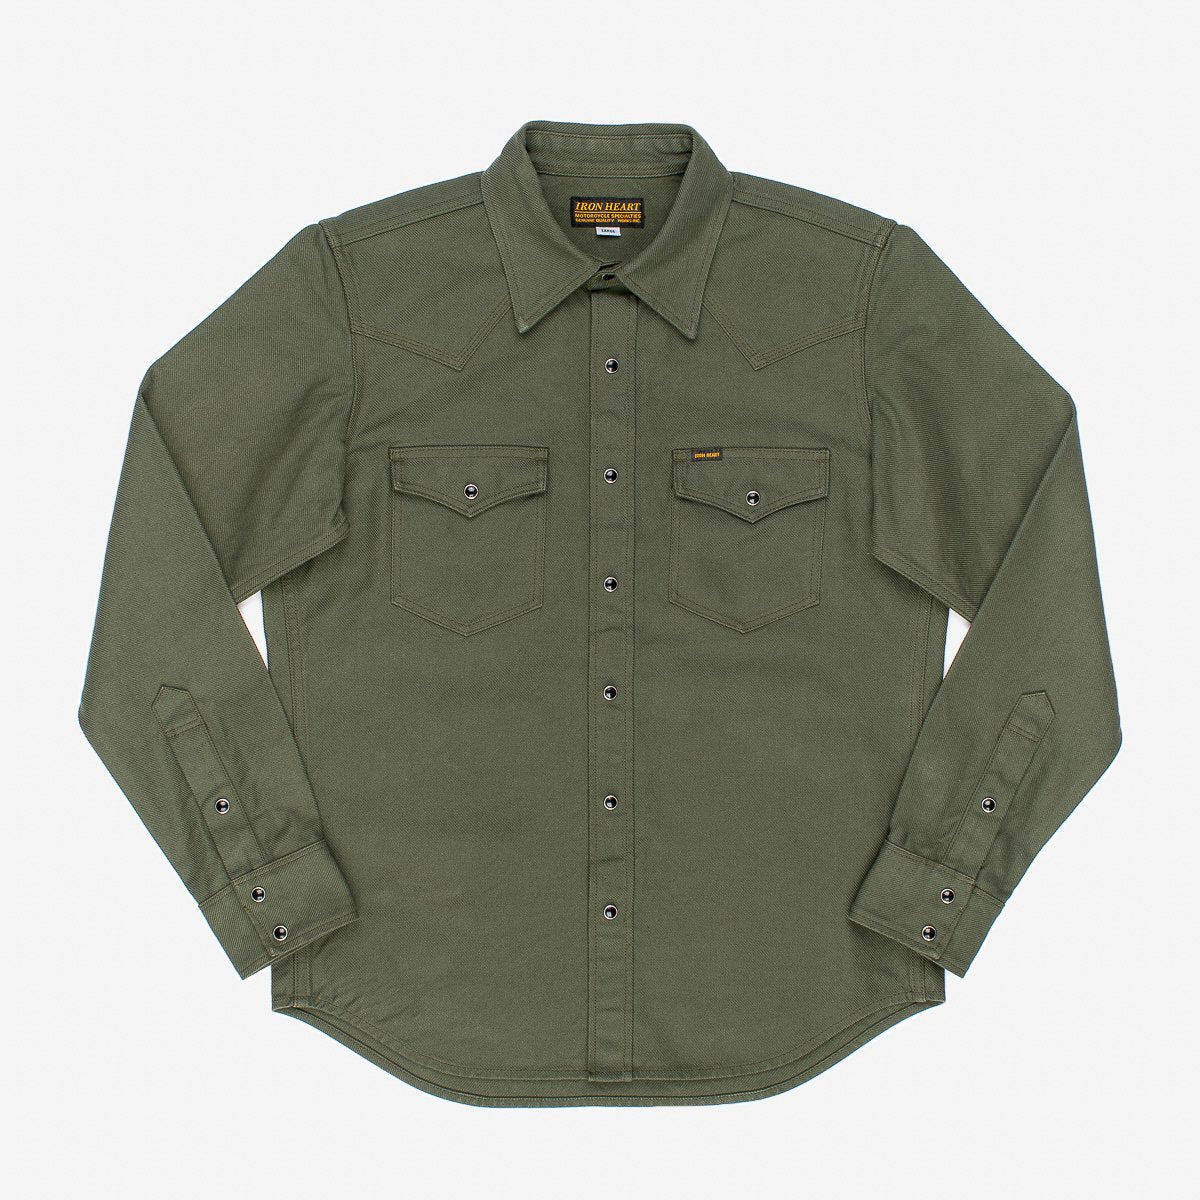 Iron heart 13OZ MILITARY SERGE WESTERN SHIRT - OLIVE